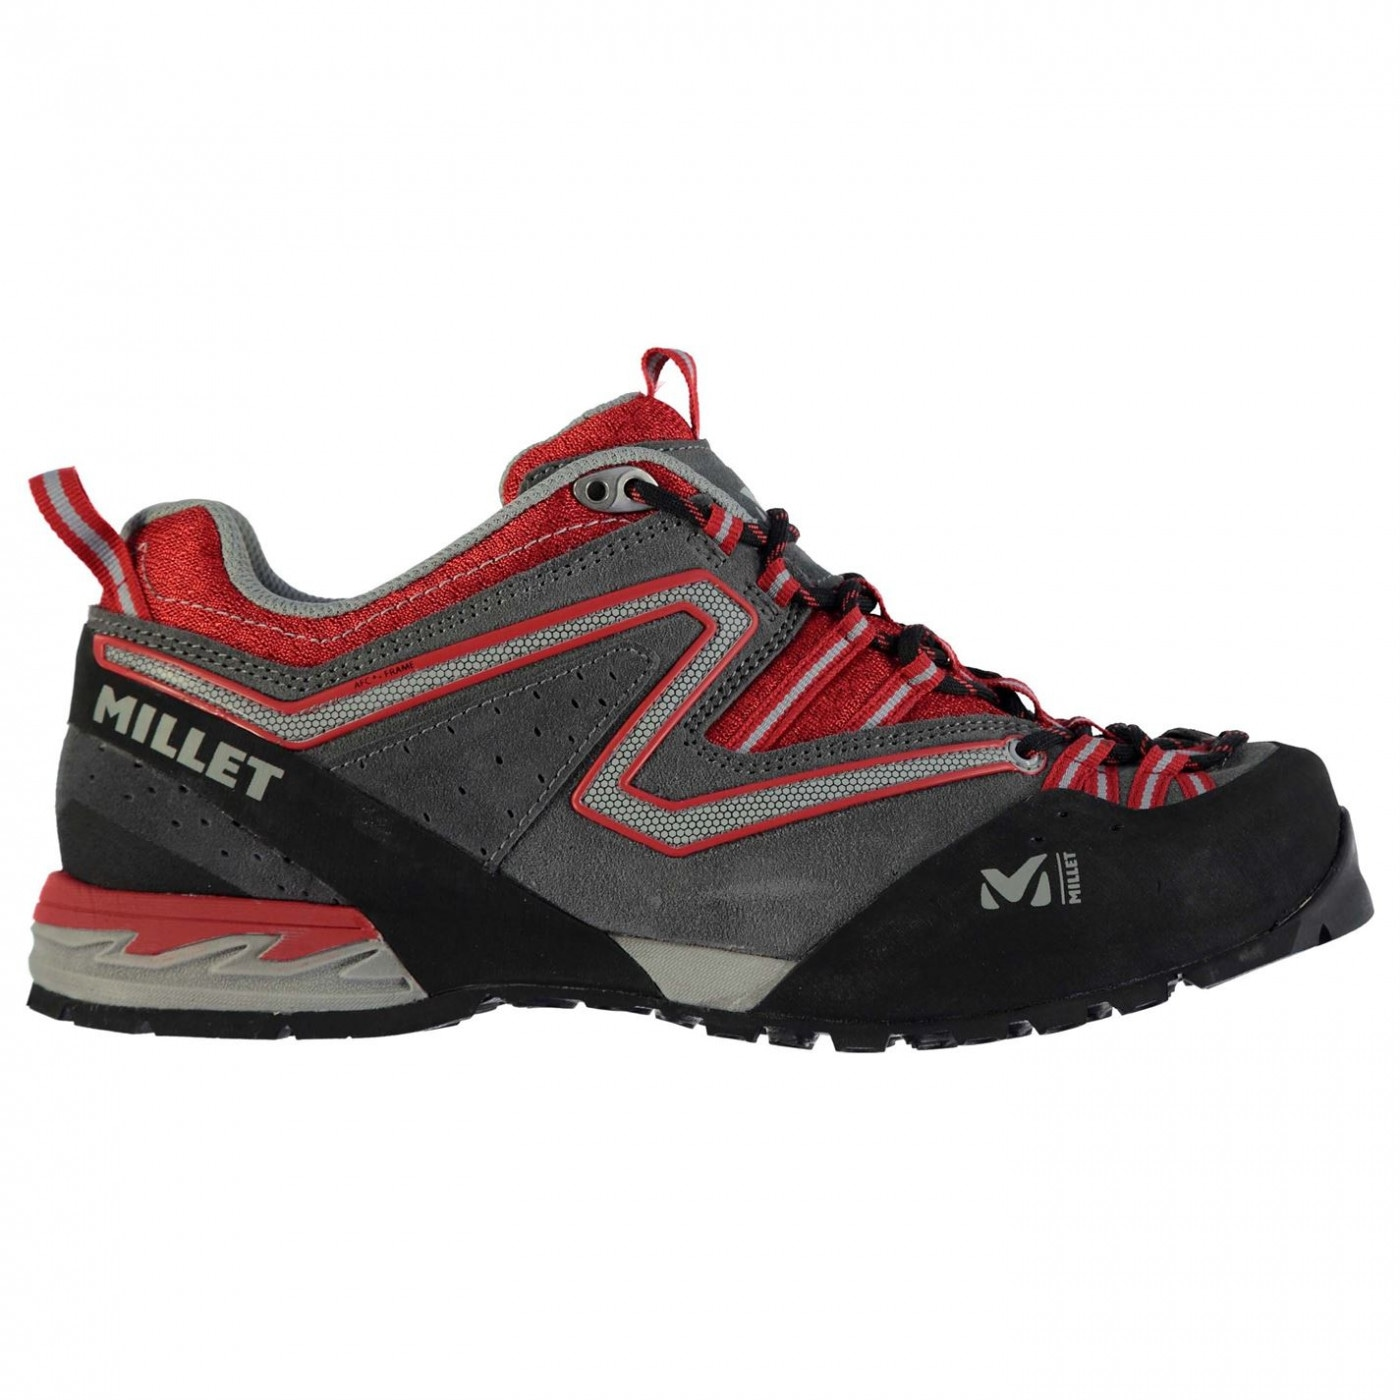 Millet Rockrise Hiking Shoes Mens